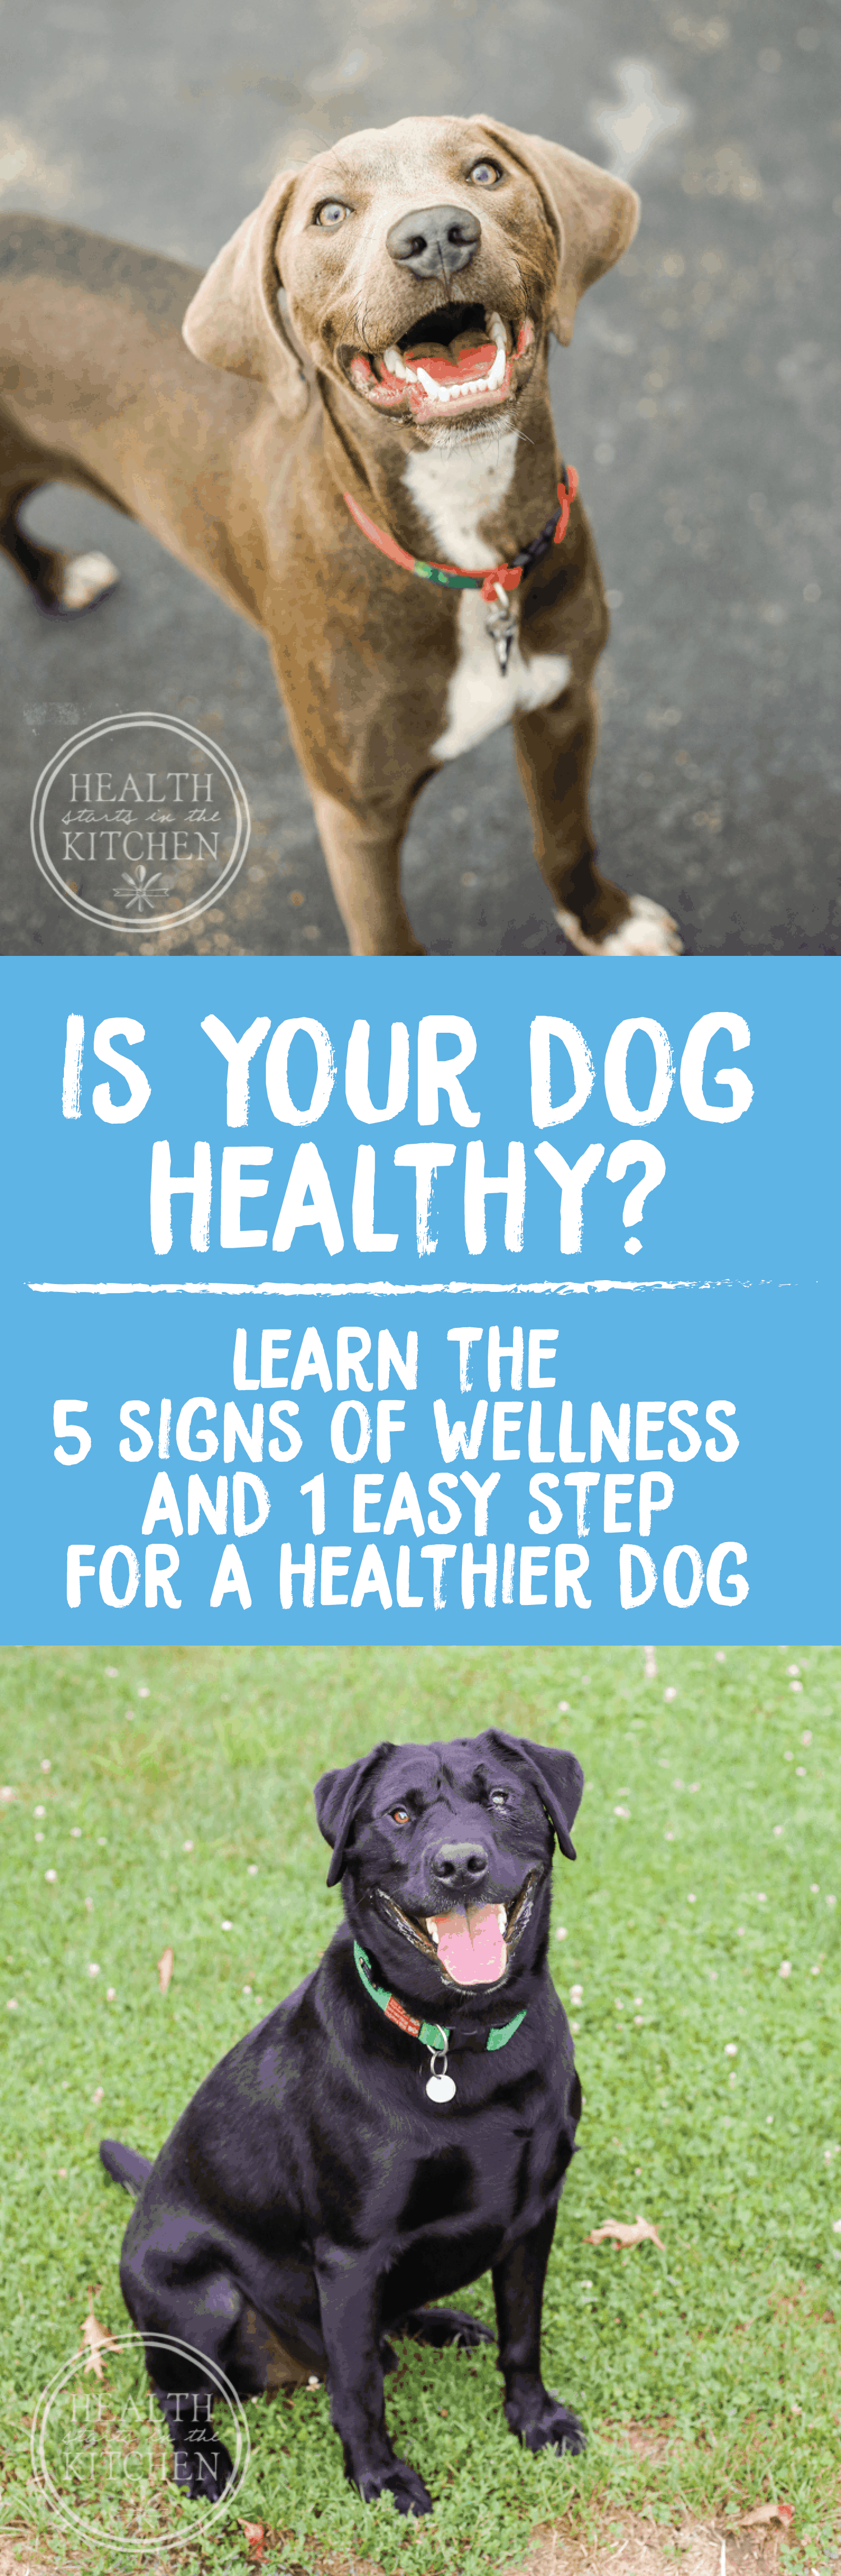 Is your Dog Thriving or Just Surviving? Learn the 5 Signs of Dog Wellness & How to Achieve them!